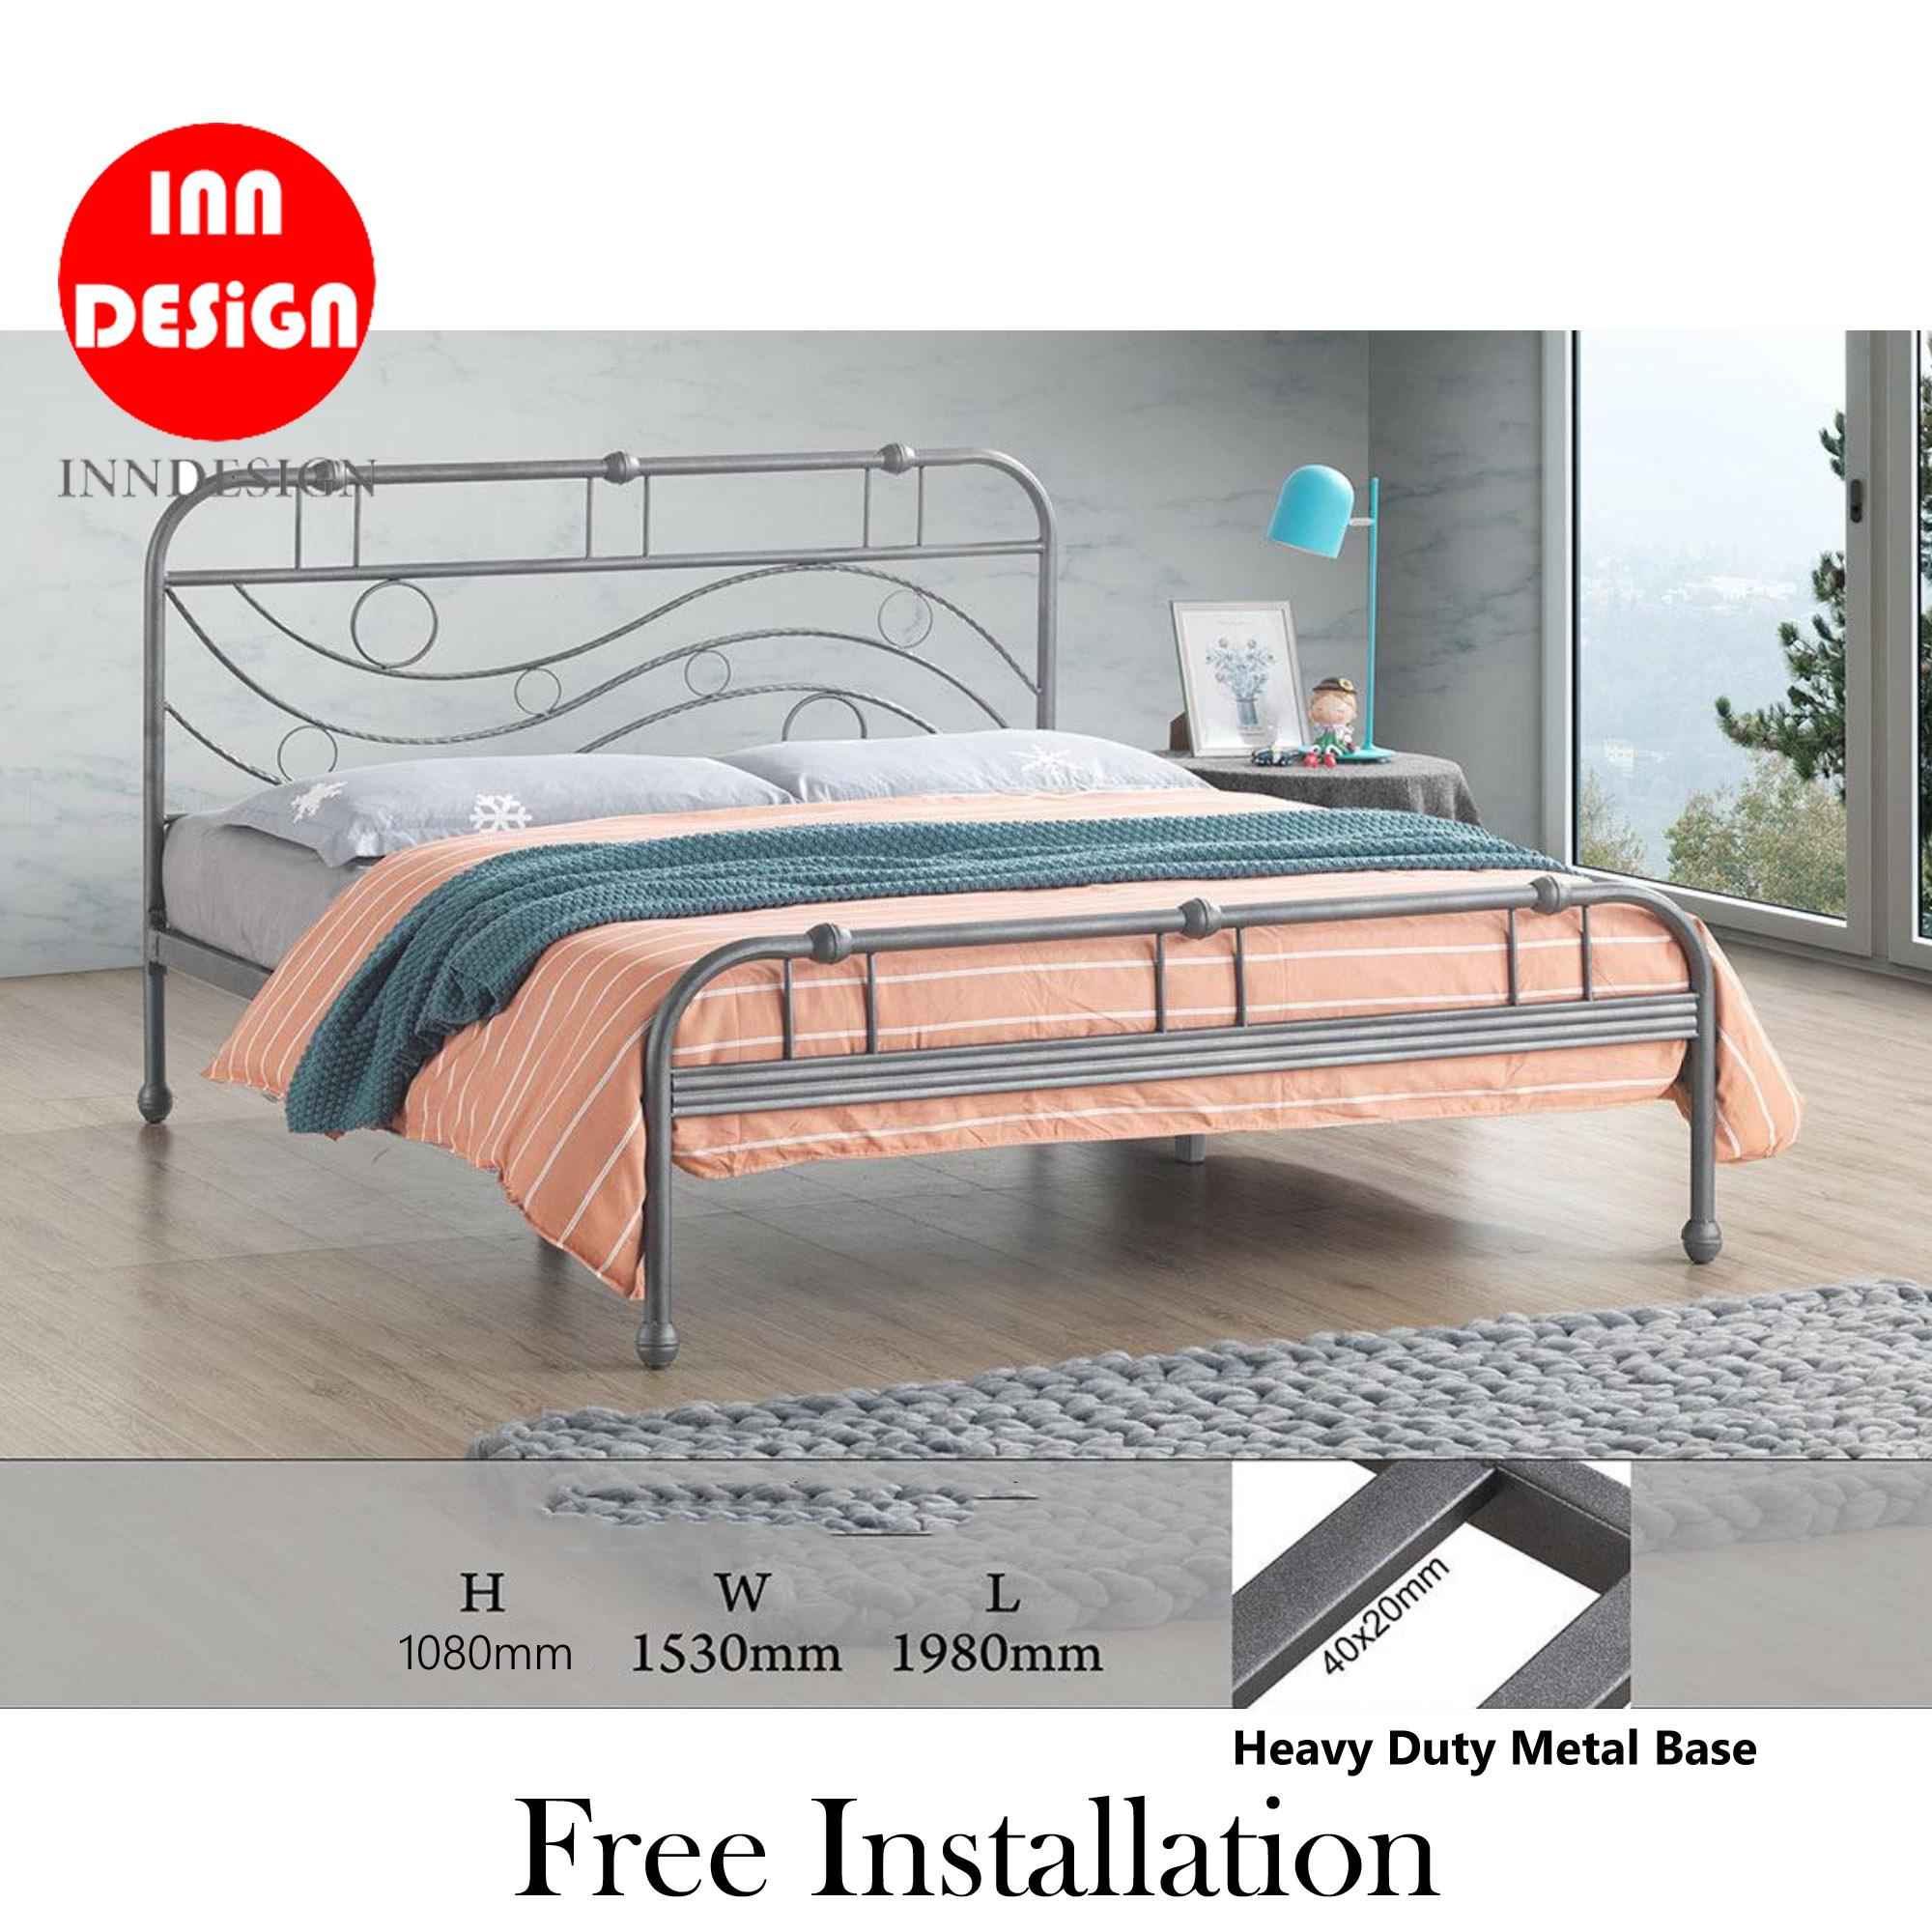 [NEW ARRIVAL] [6 Months Warranty] Zano Queen Heavy Duty Metal Bedframe / Bed / Bed frame (Free Delivery and Installation)